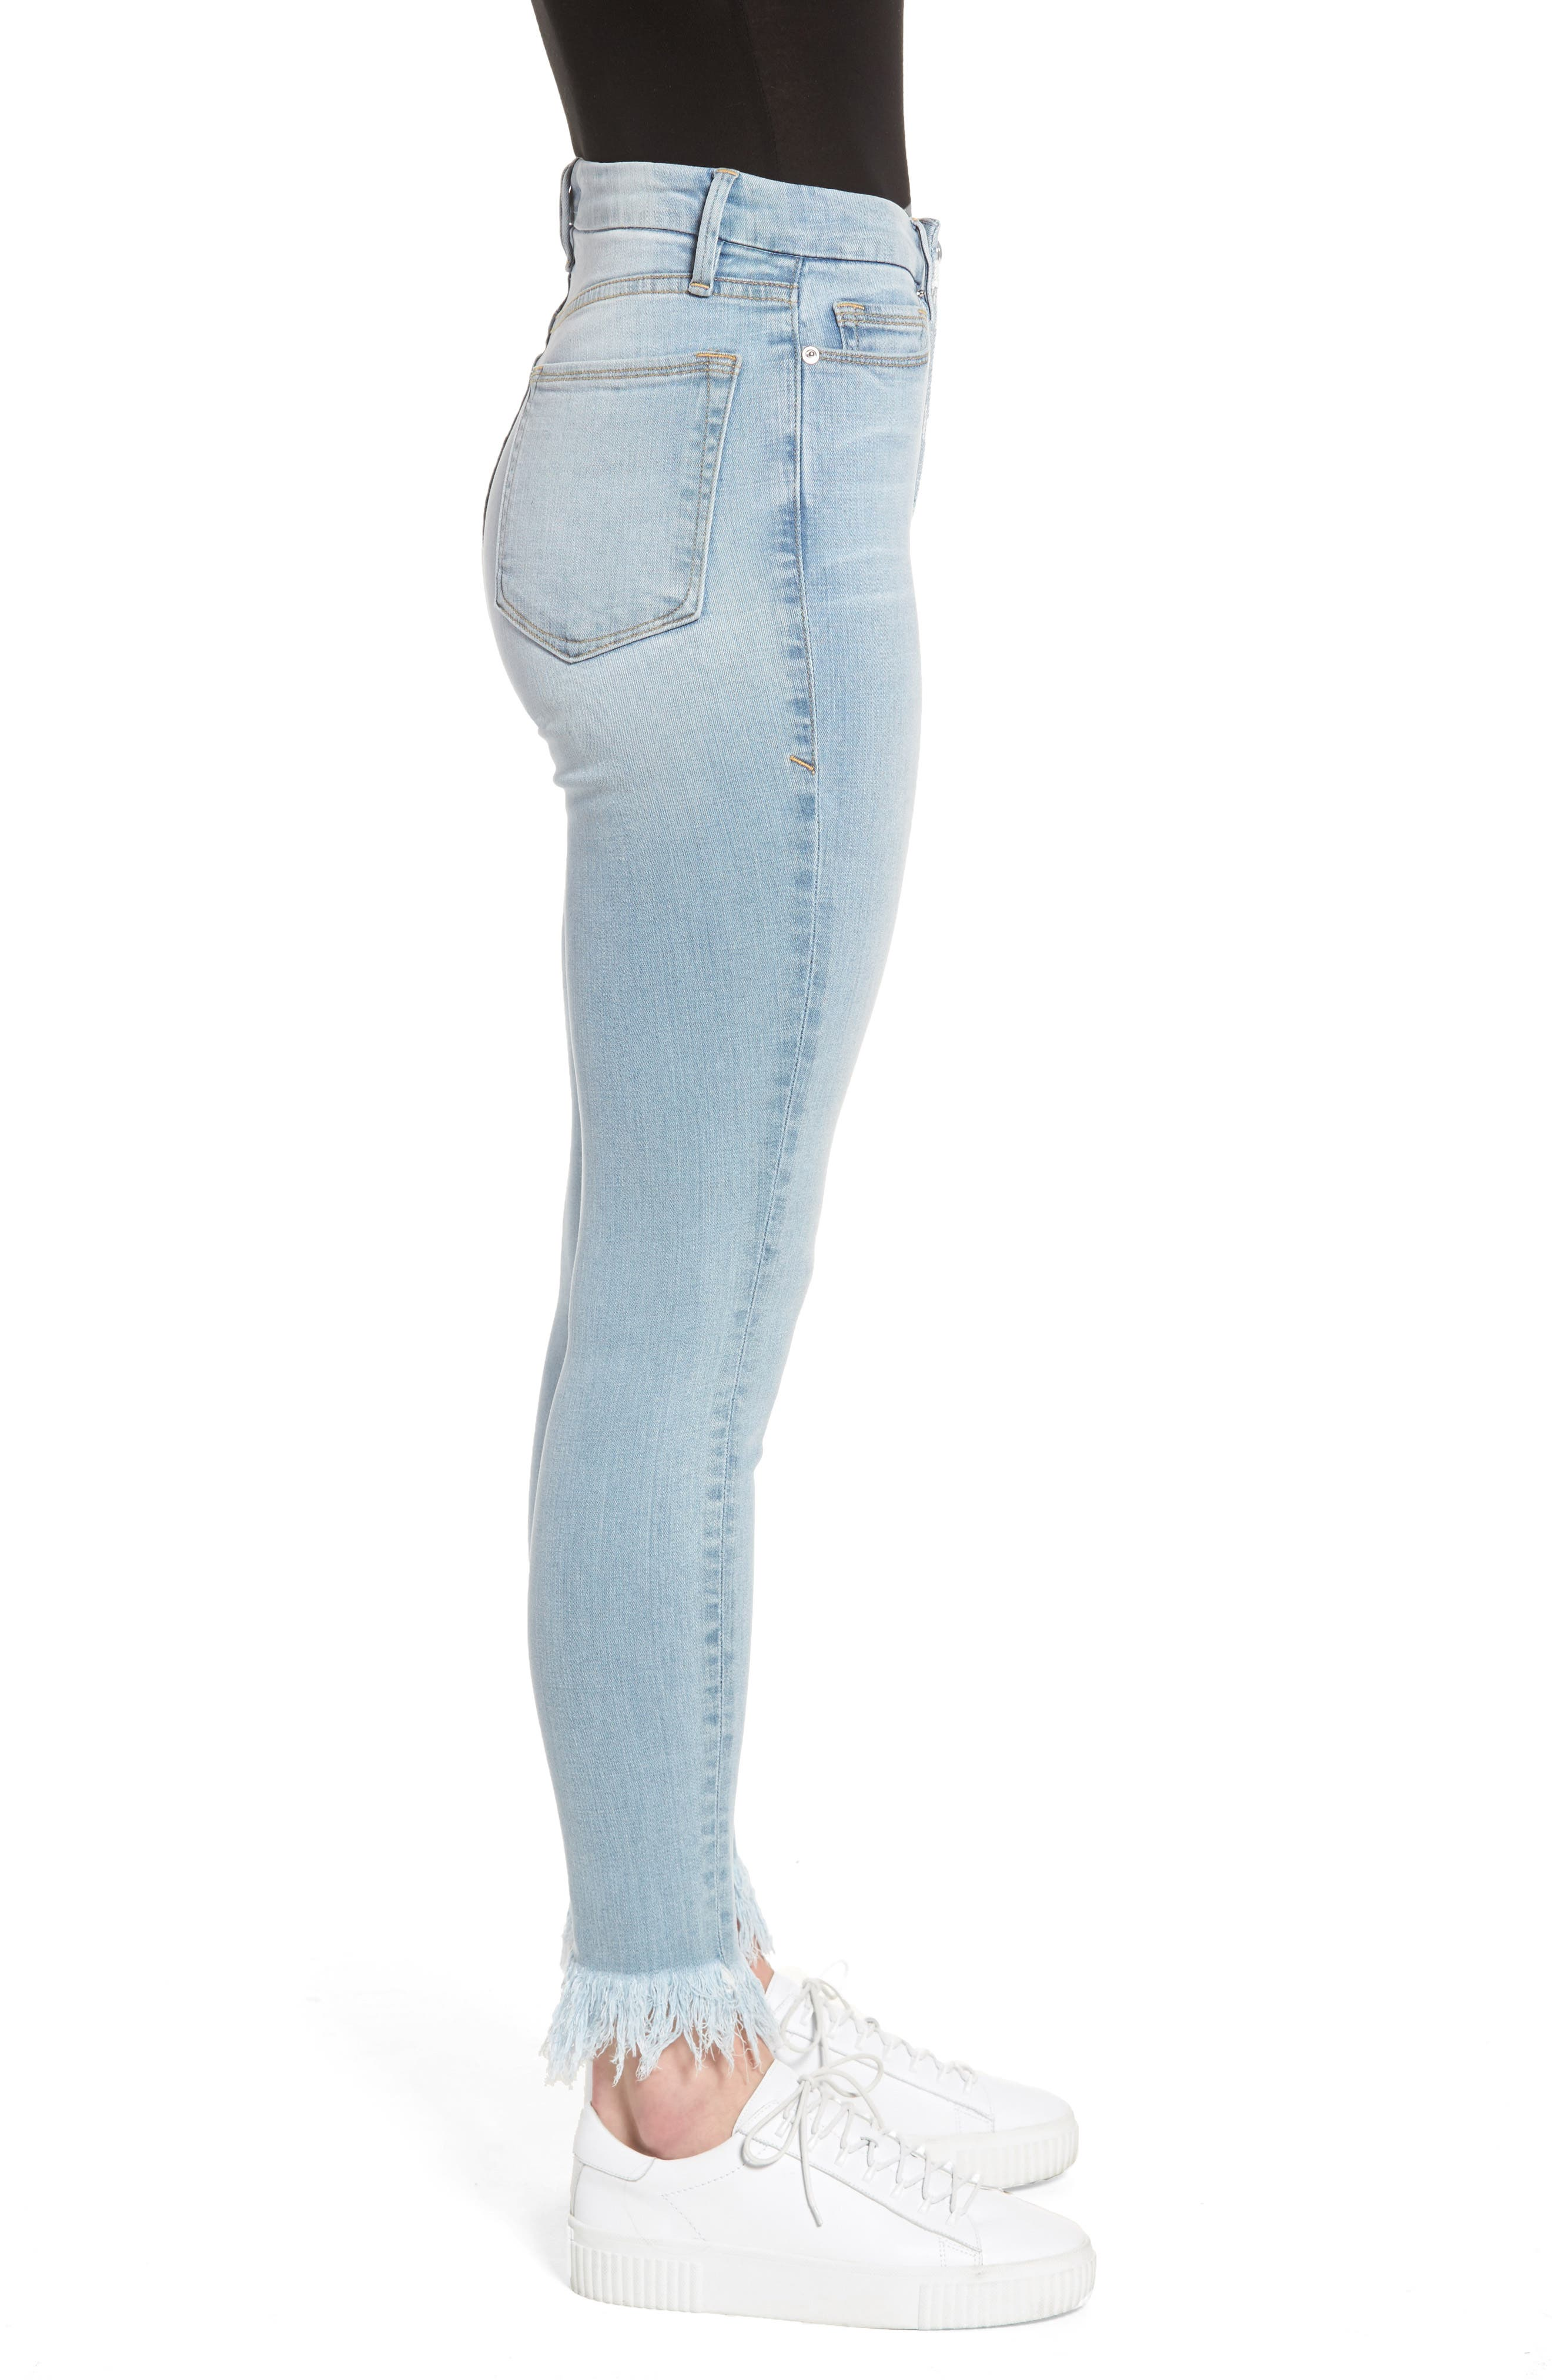 Alternate Image 3  - Good American Good Waist High Waist Frayed Ankle Skinny Jeans (Blue 054) (Extended Sizes)